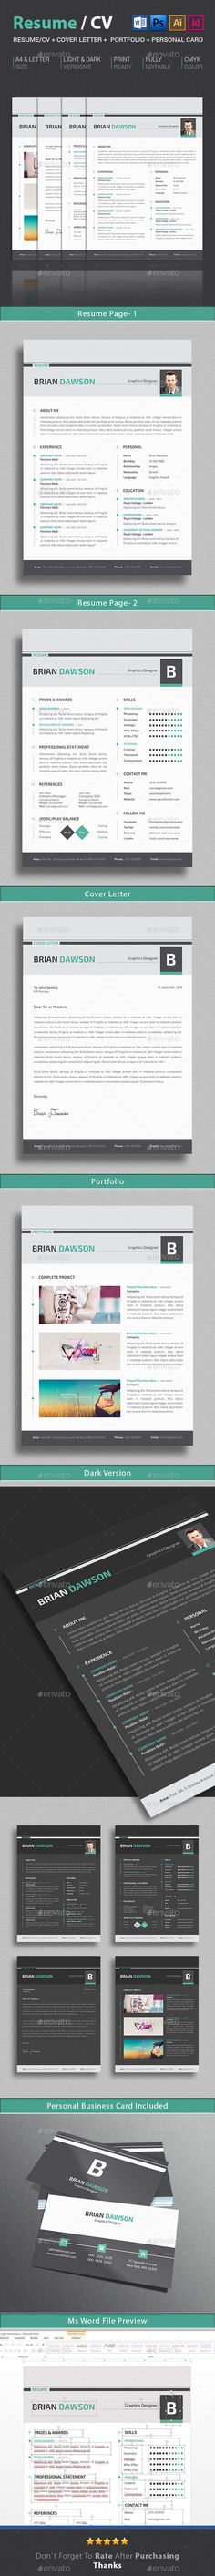 Two Page Resume + Cover Letter Resume Templates Pinterest - ocean engineer sample resume